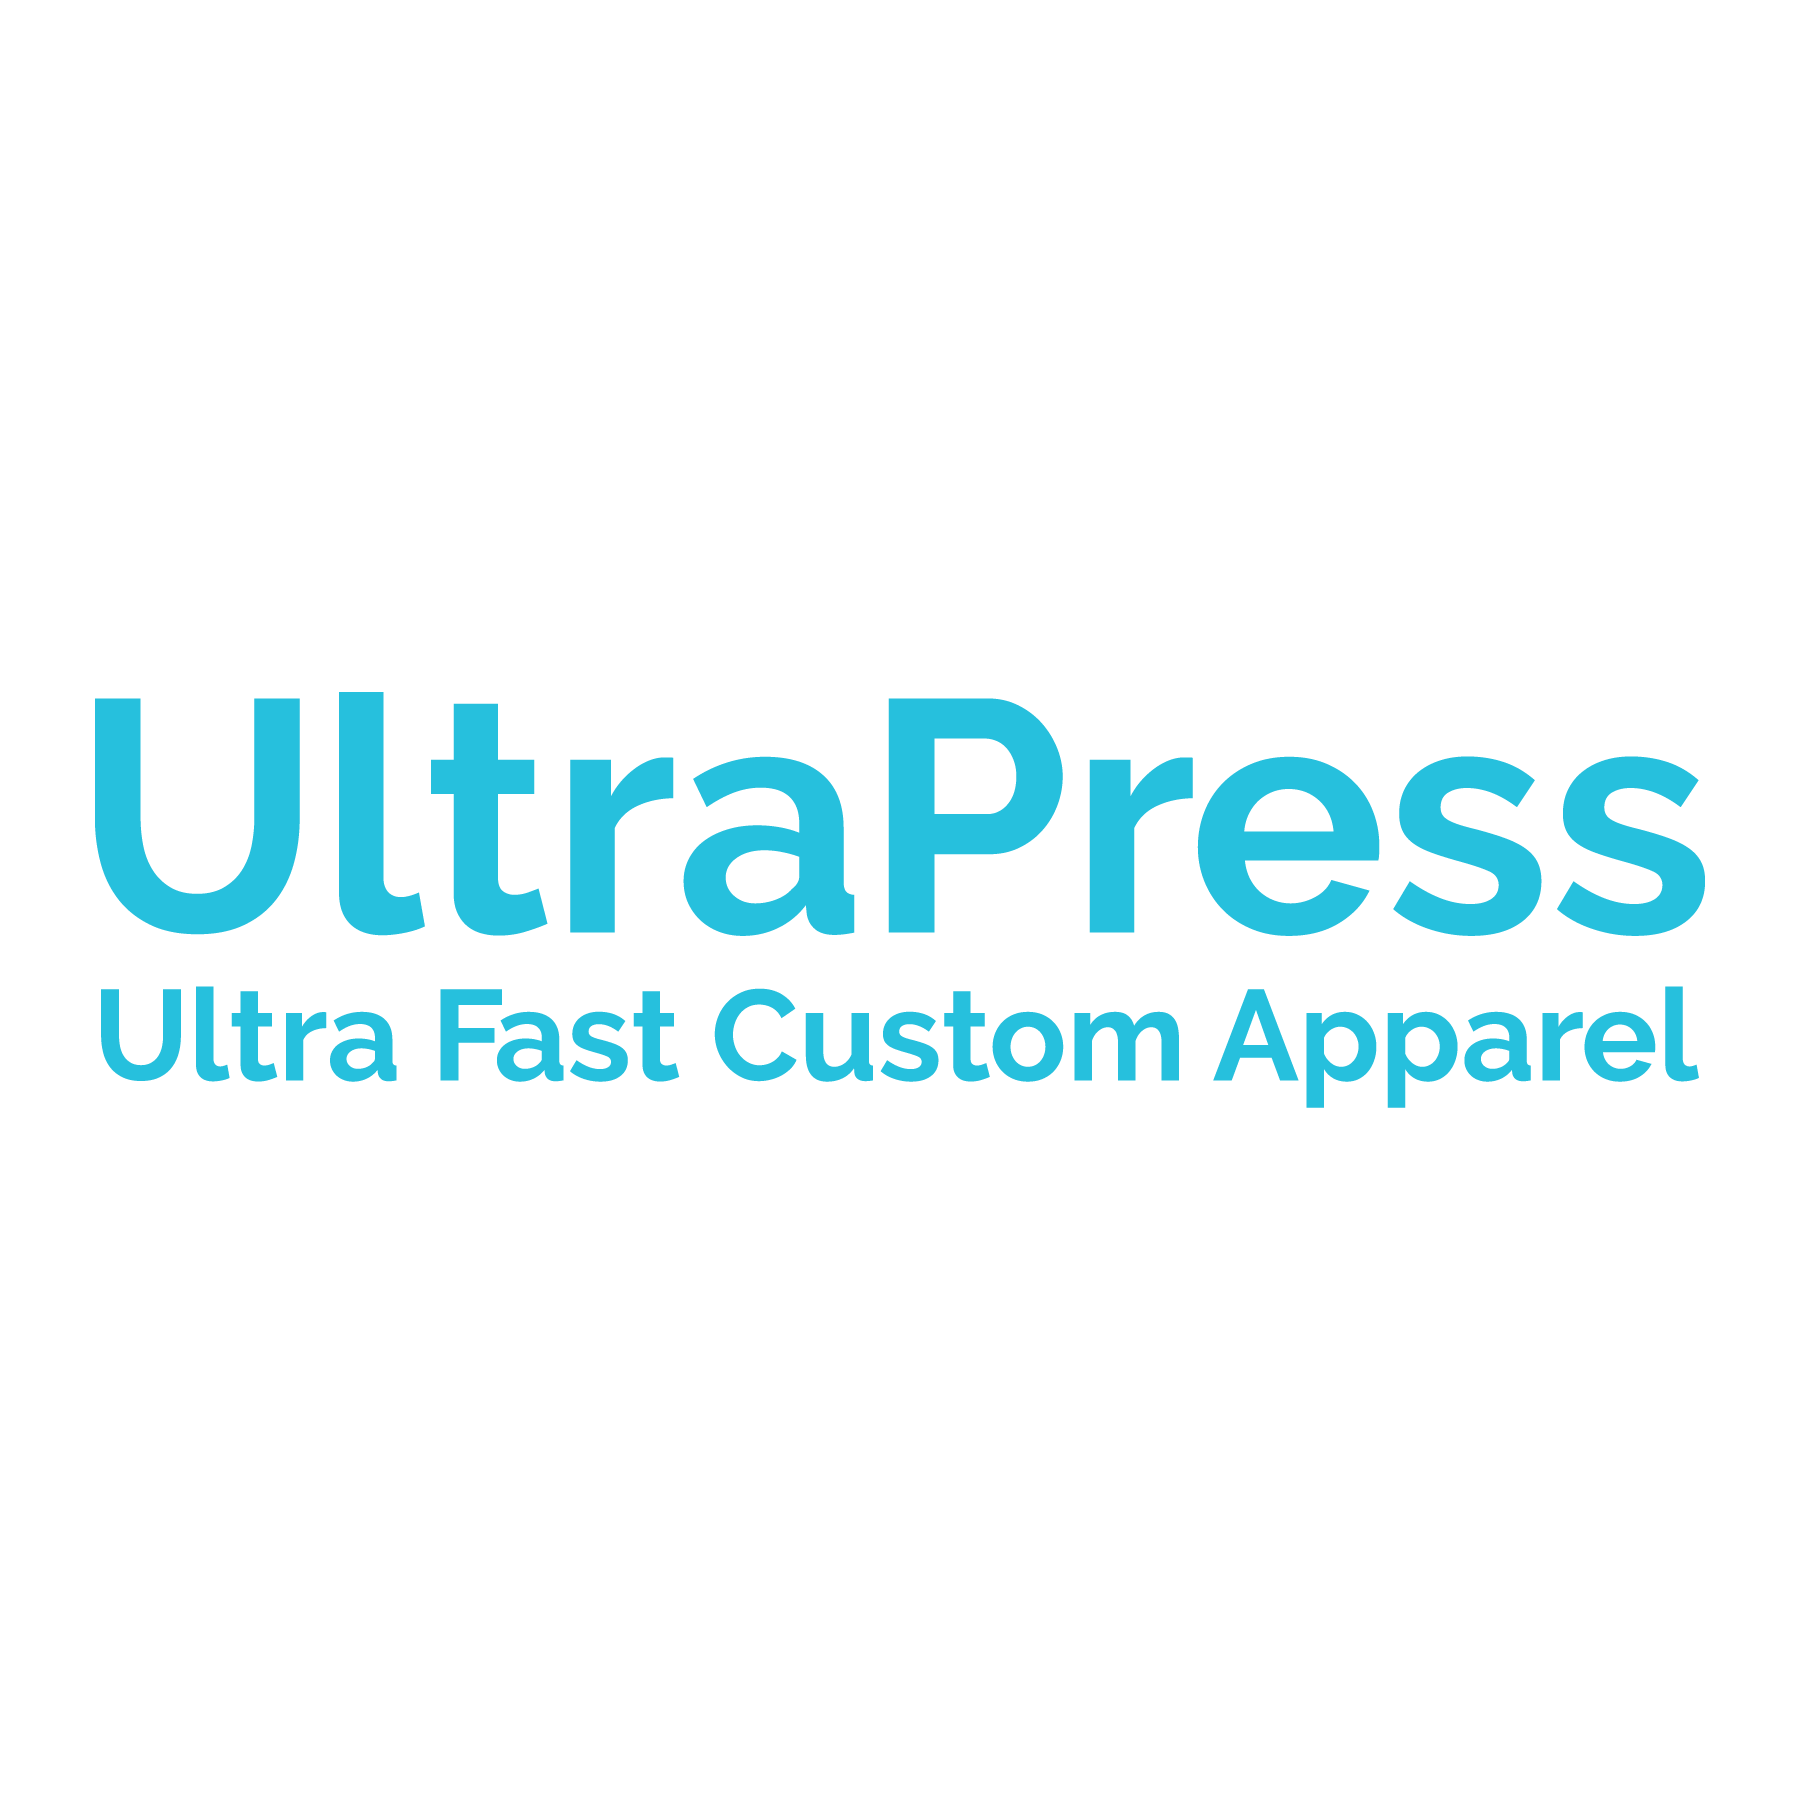 Ultra Press